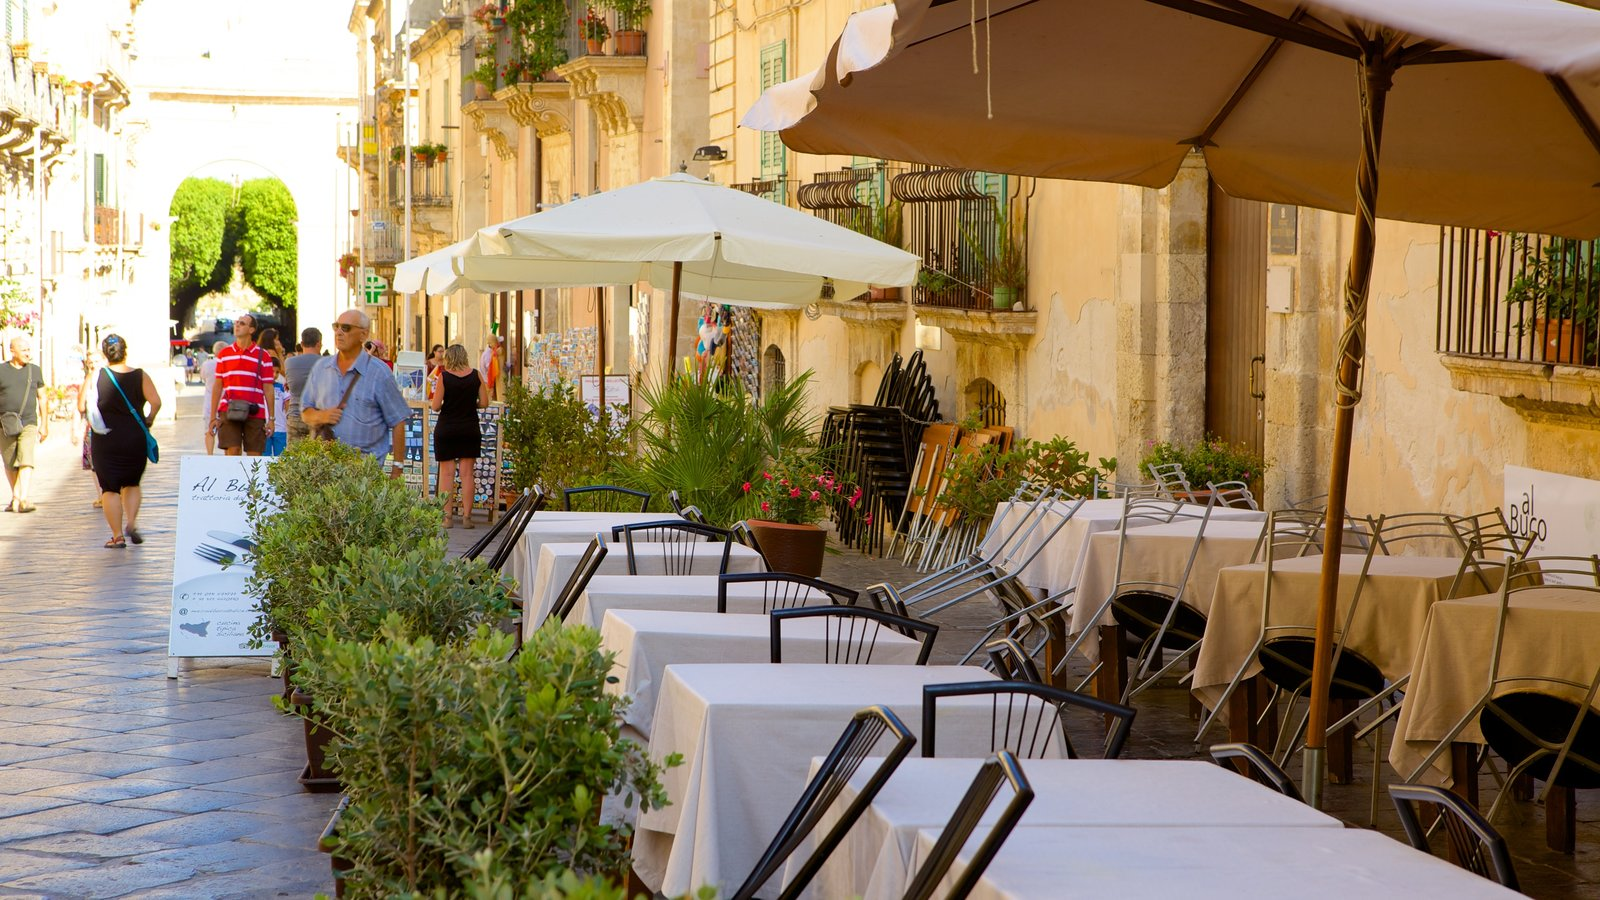 Noto showing outdoor eating, cafe scenes and street scenes